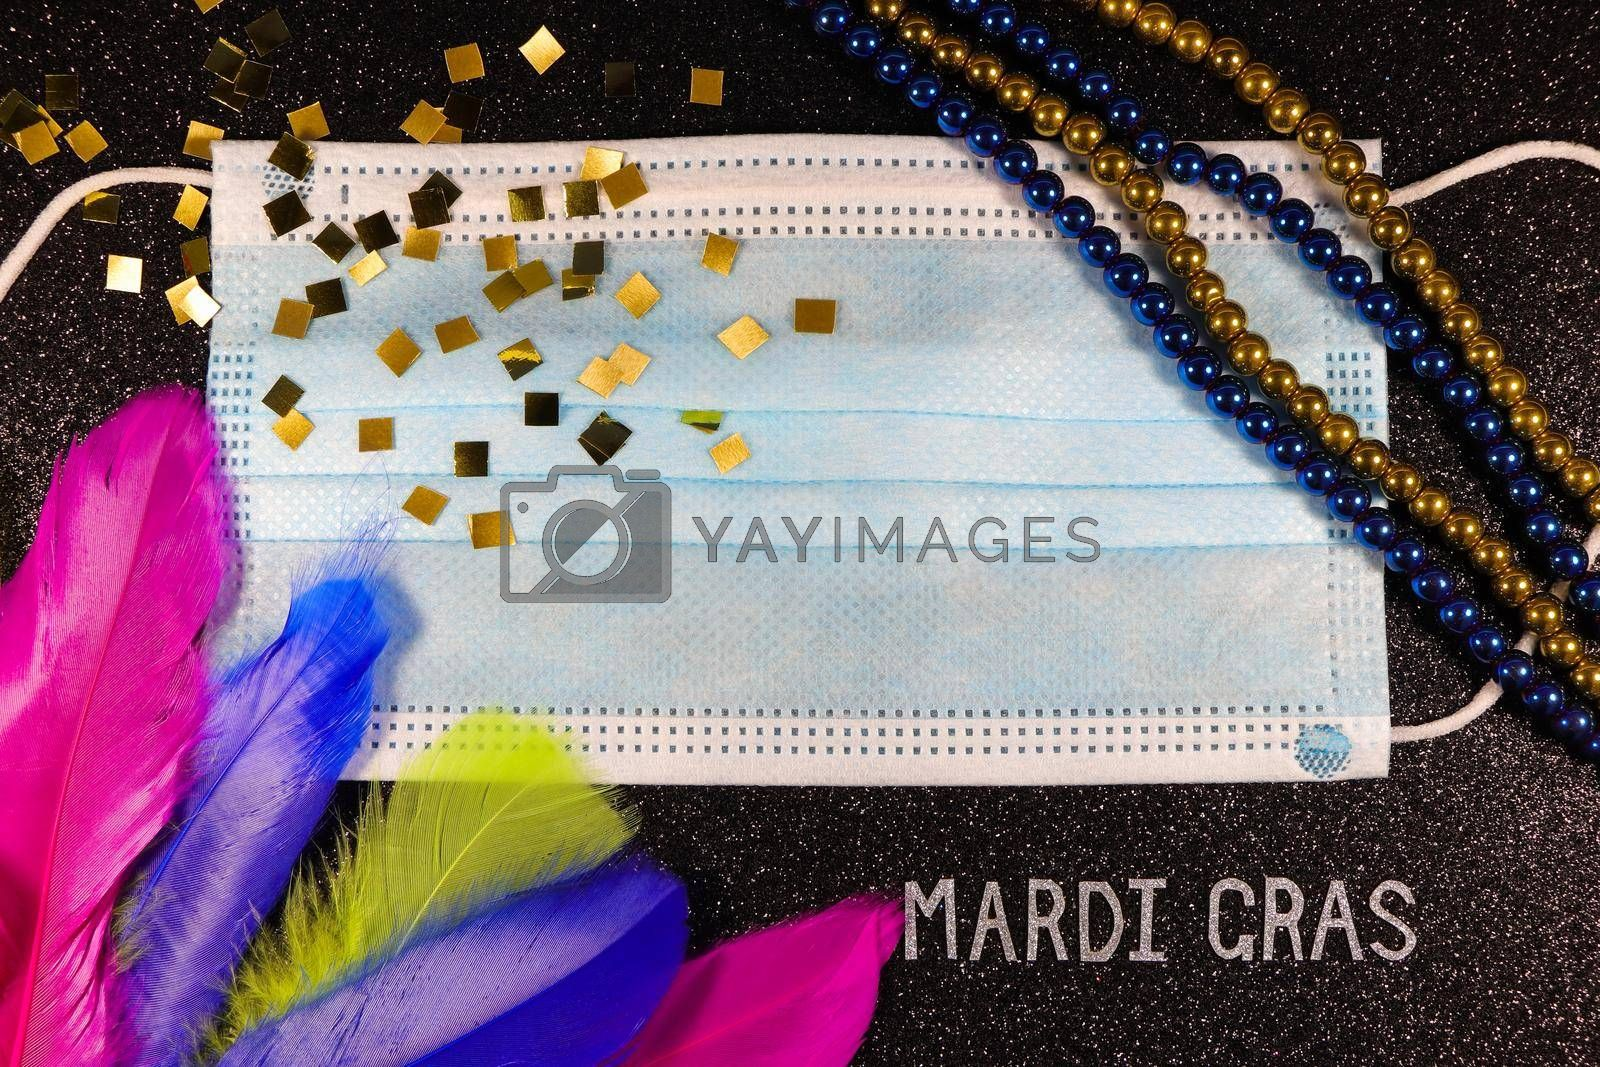 Mardi Gras carnival theme medical facemask with feathers and bead strings layout on textured black